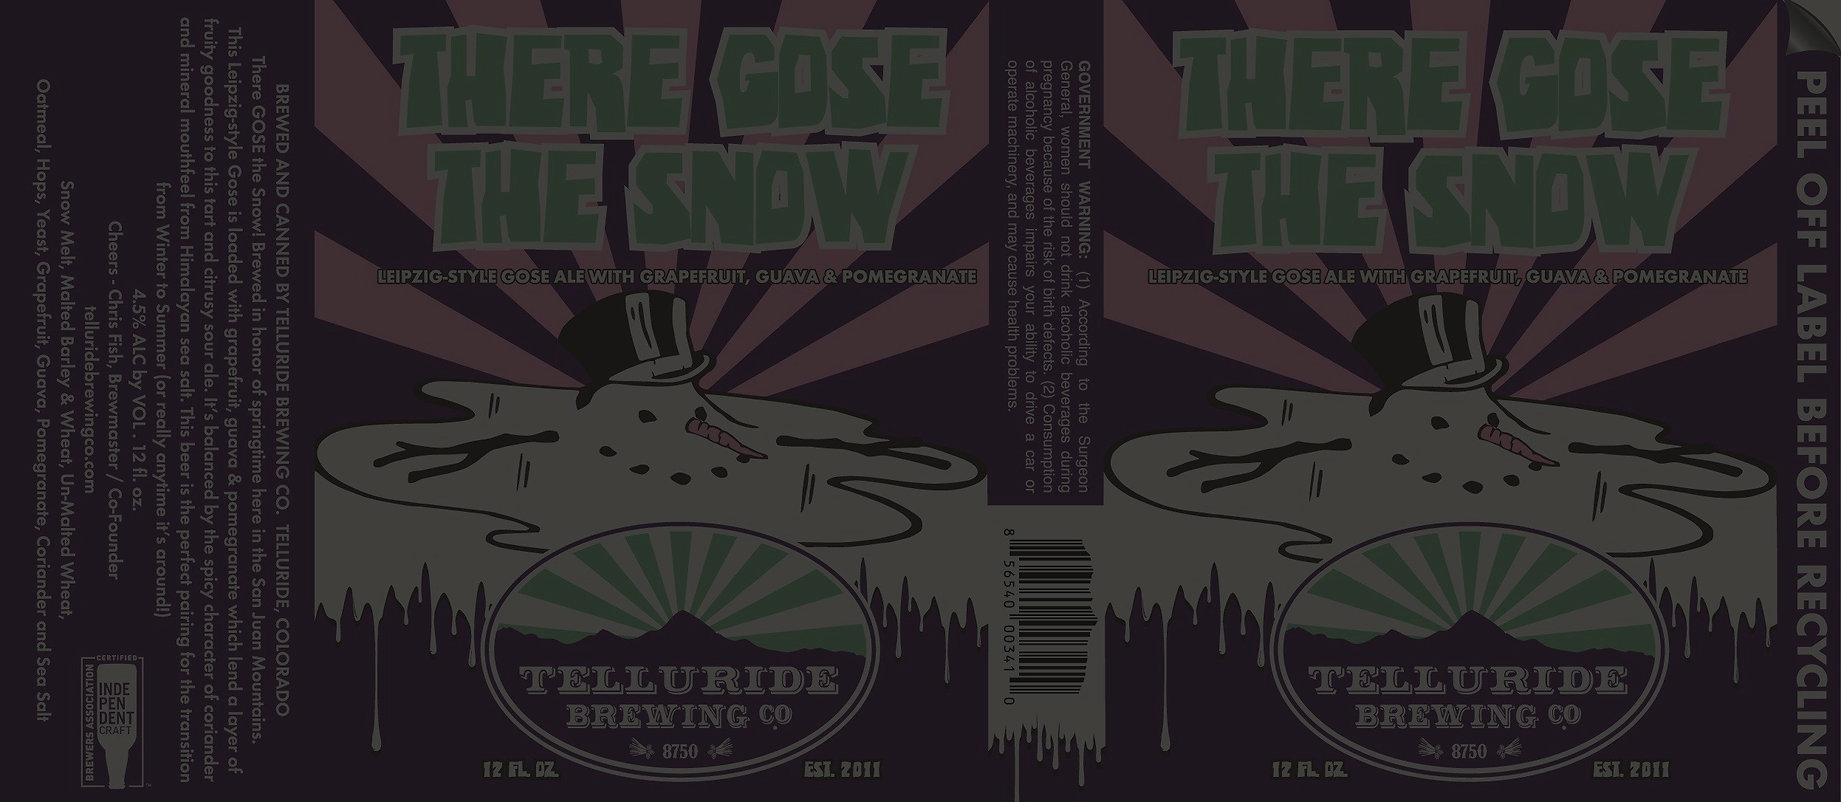 There%252520Gose%252520the%252520Snow%25